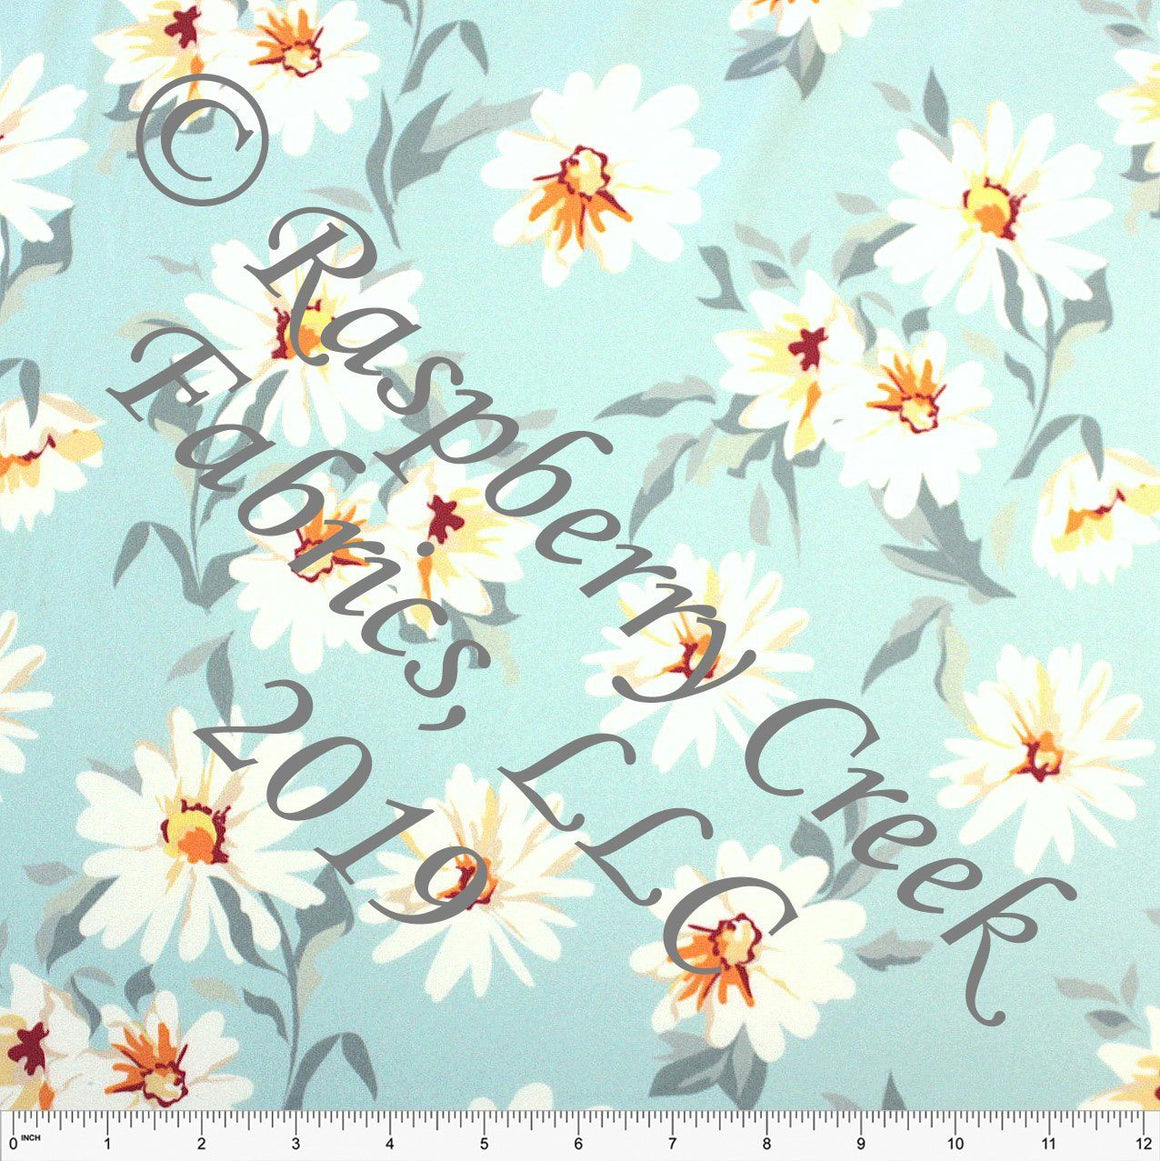 Tonal Blue Grey Orange and White Daisy Floral 4 Way Stretch Double Brushed Poly Knit Fabric, Brushed Poly for CLUB Fabrics